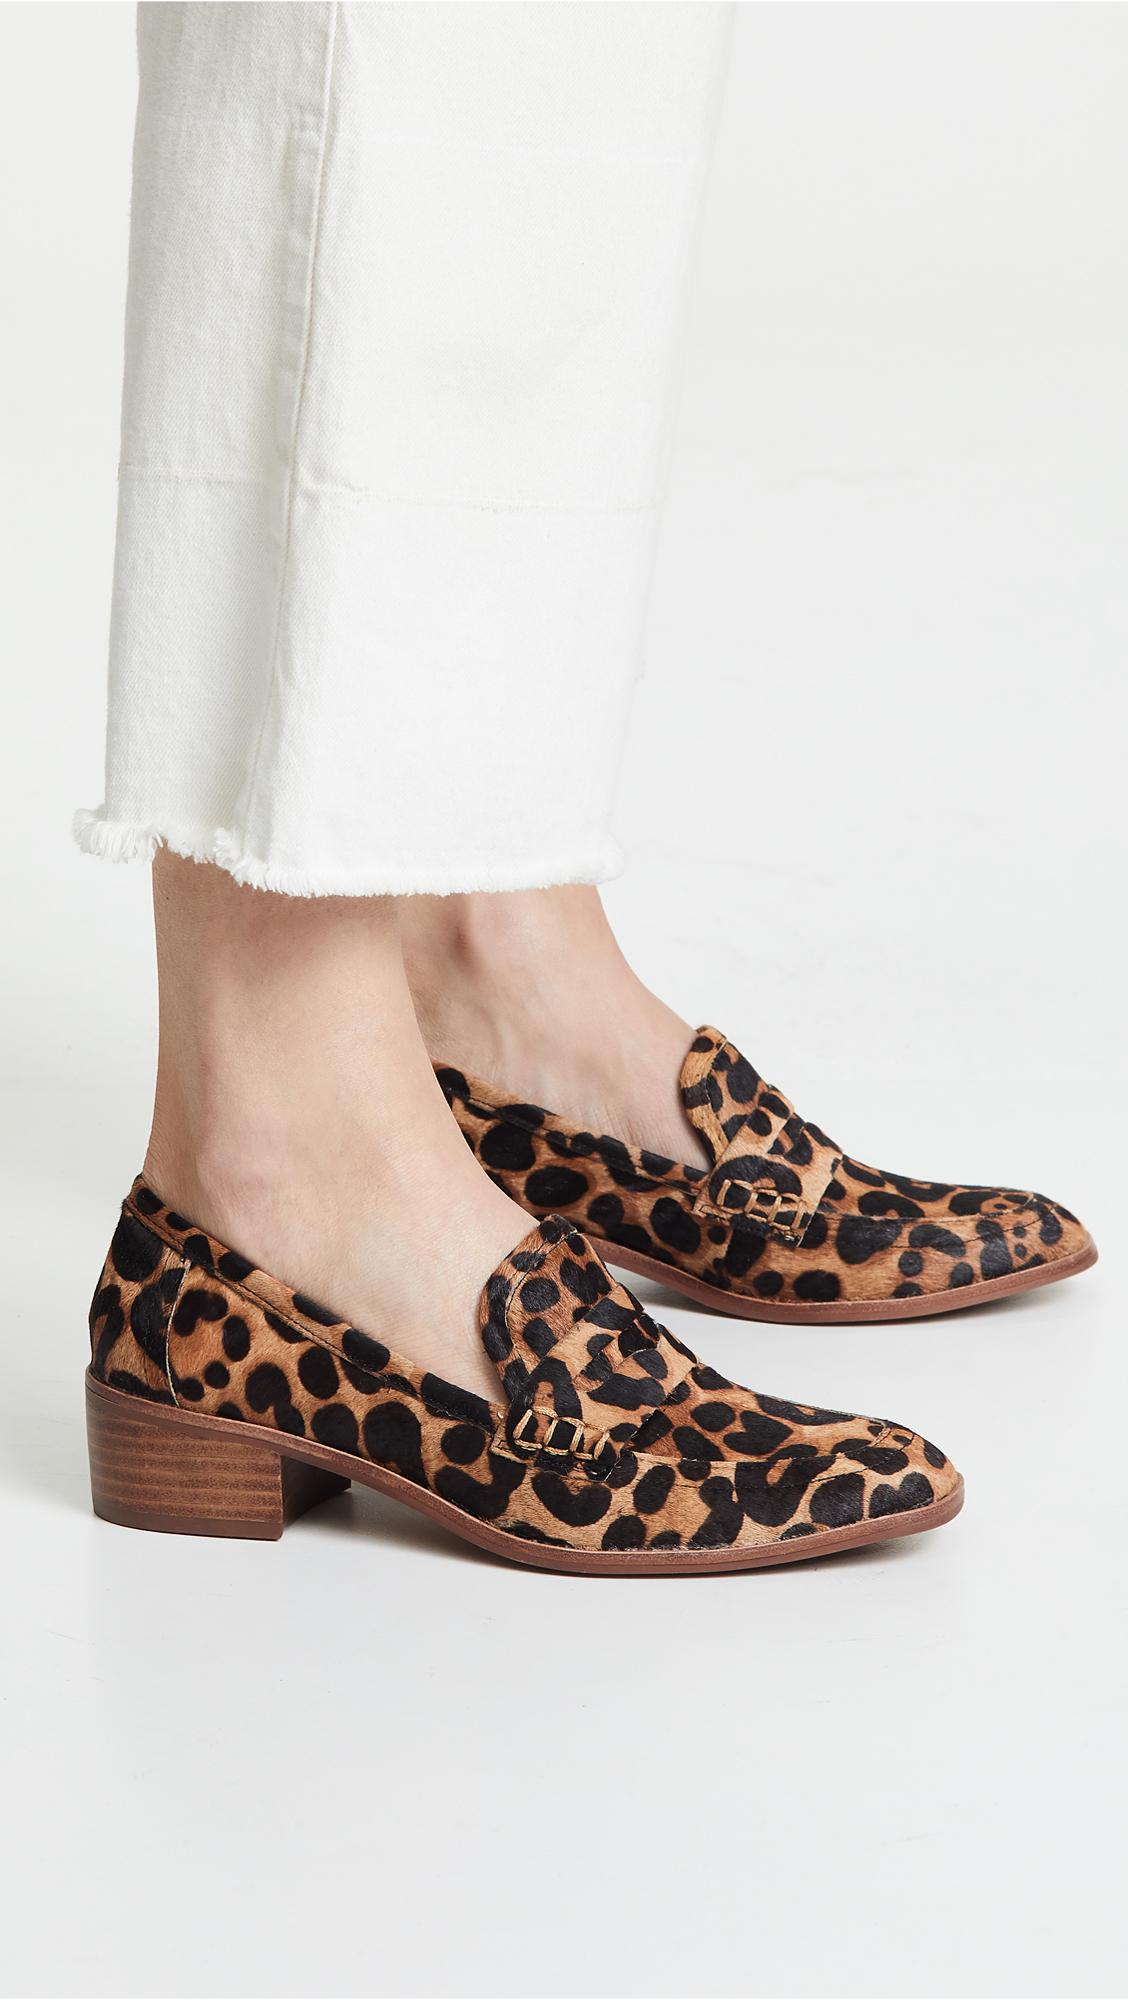 e4e5ad0523c91 Steven by Steve Madden Iona Loafers in Brown - Lyst